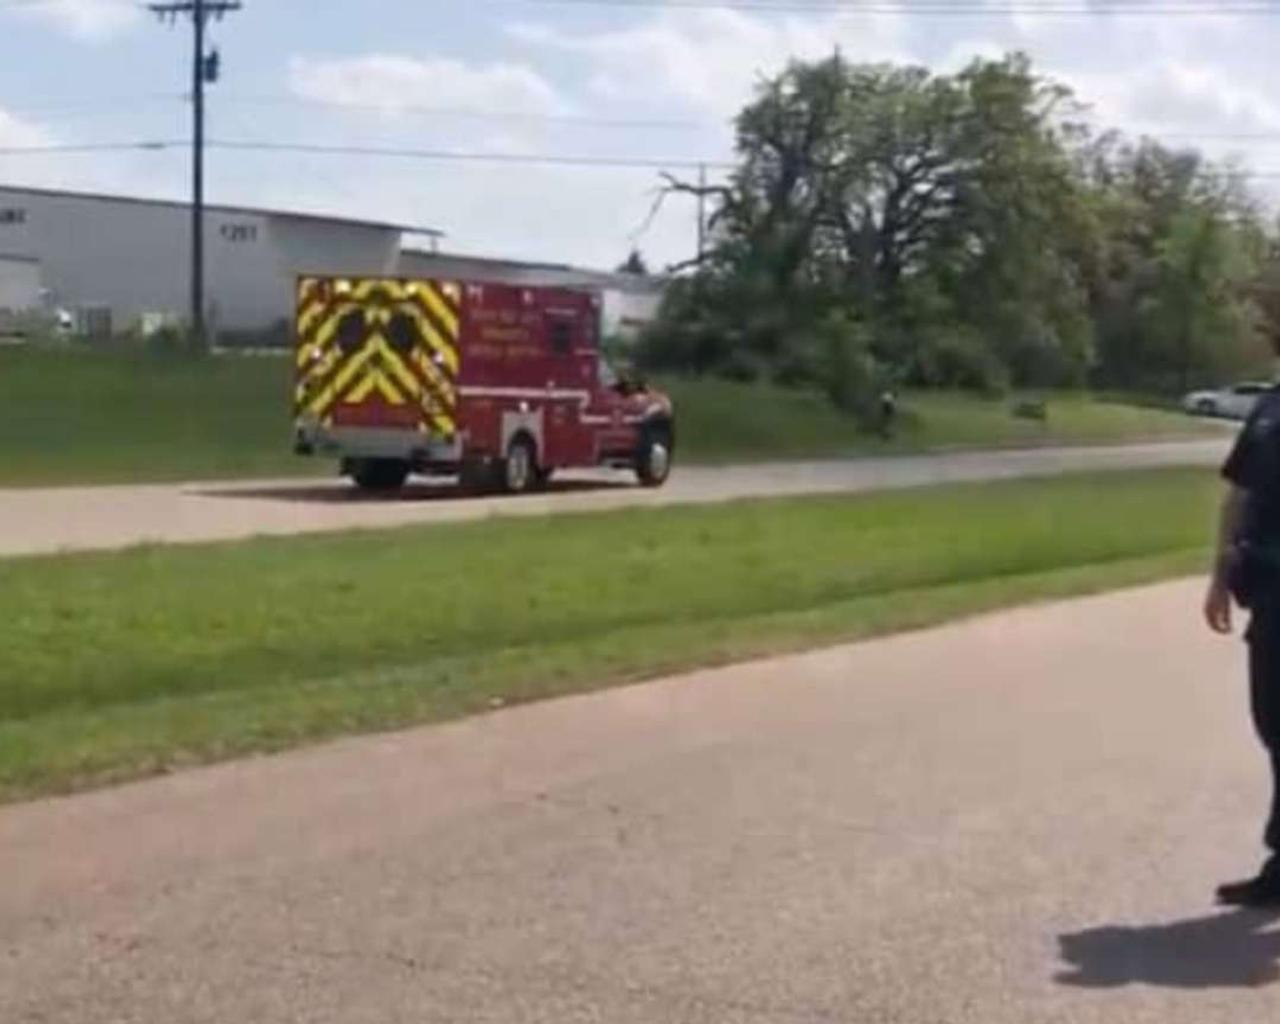 At least one person was shot, and five others were wounded in a firing at an industrial park in Texas.